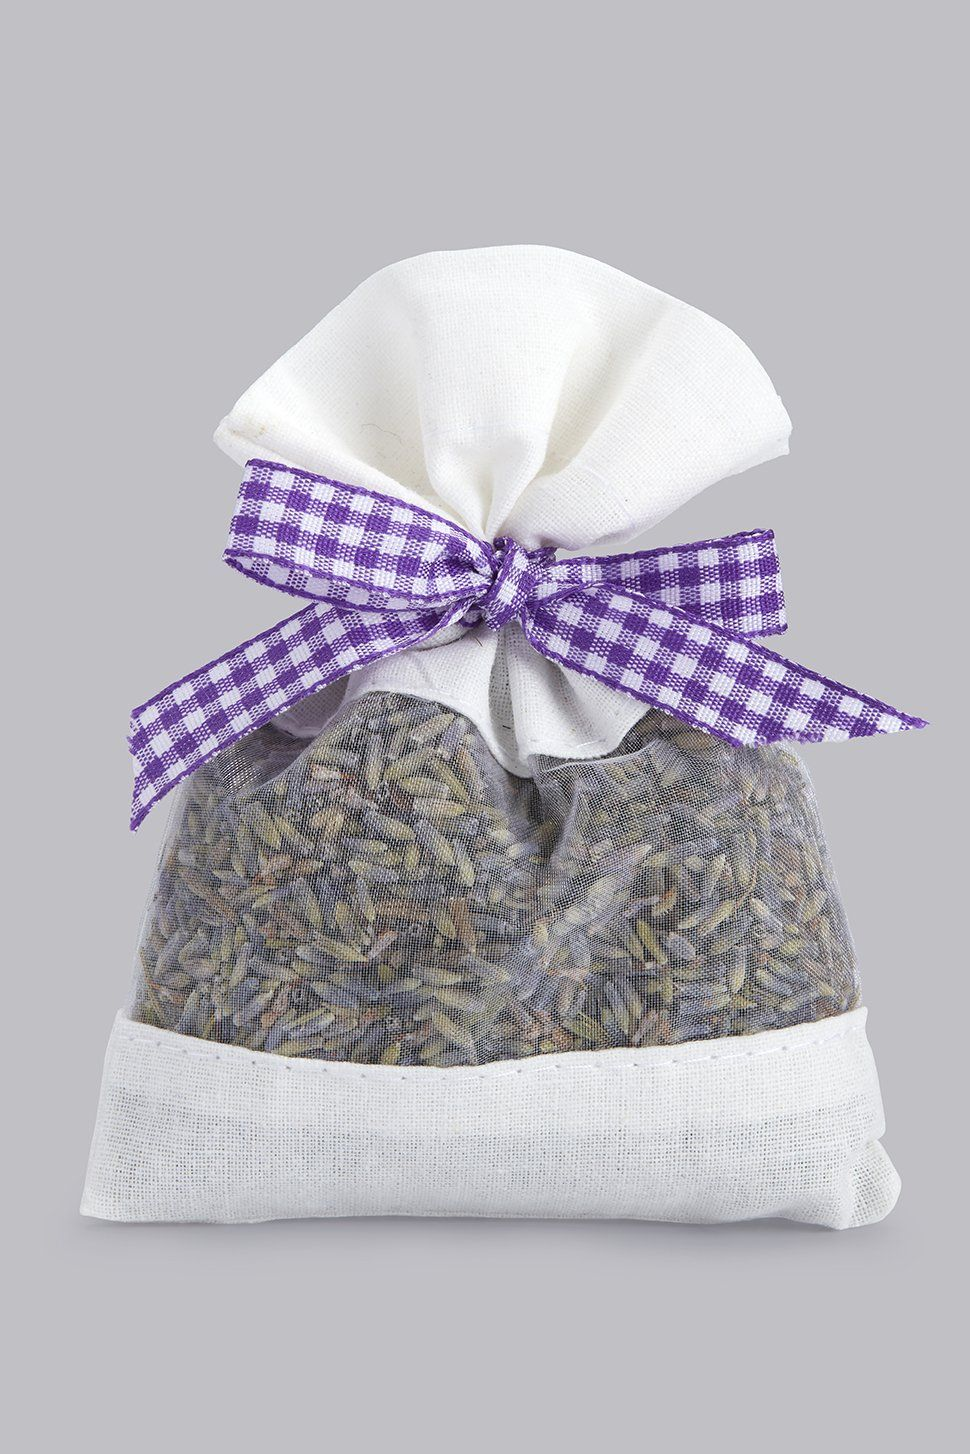 Lavender Bags Toiletries Lavender Hill Clothing